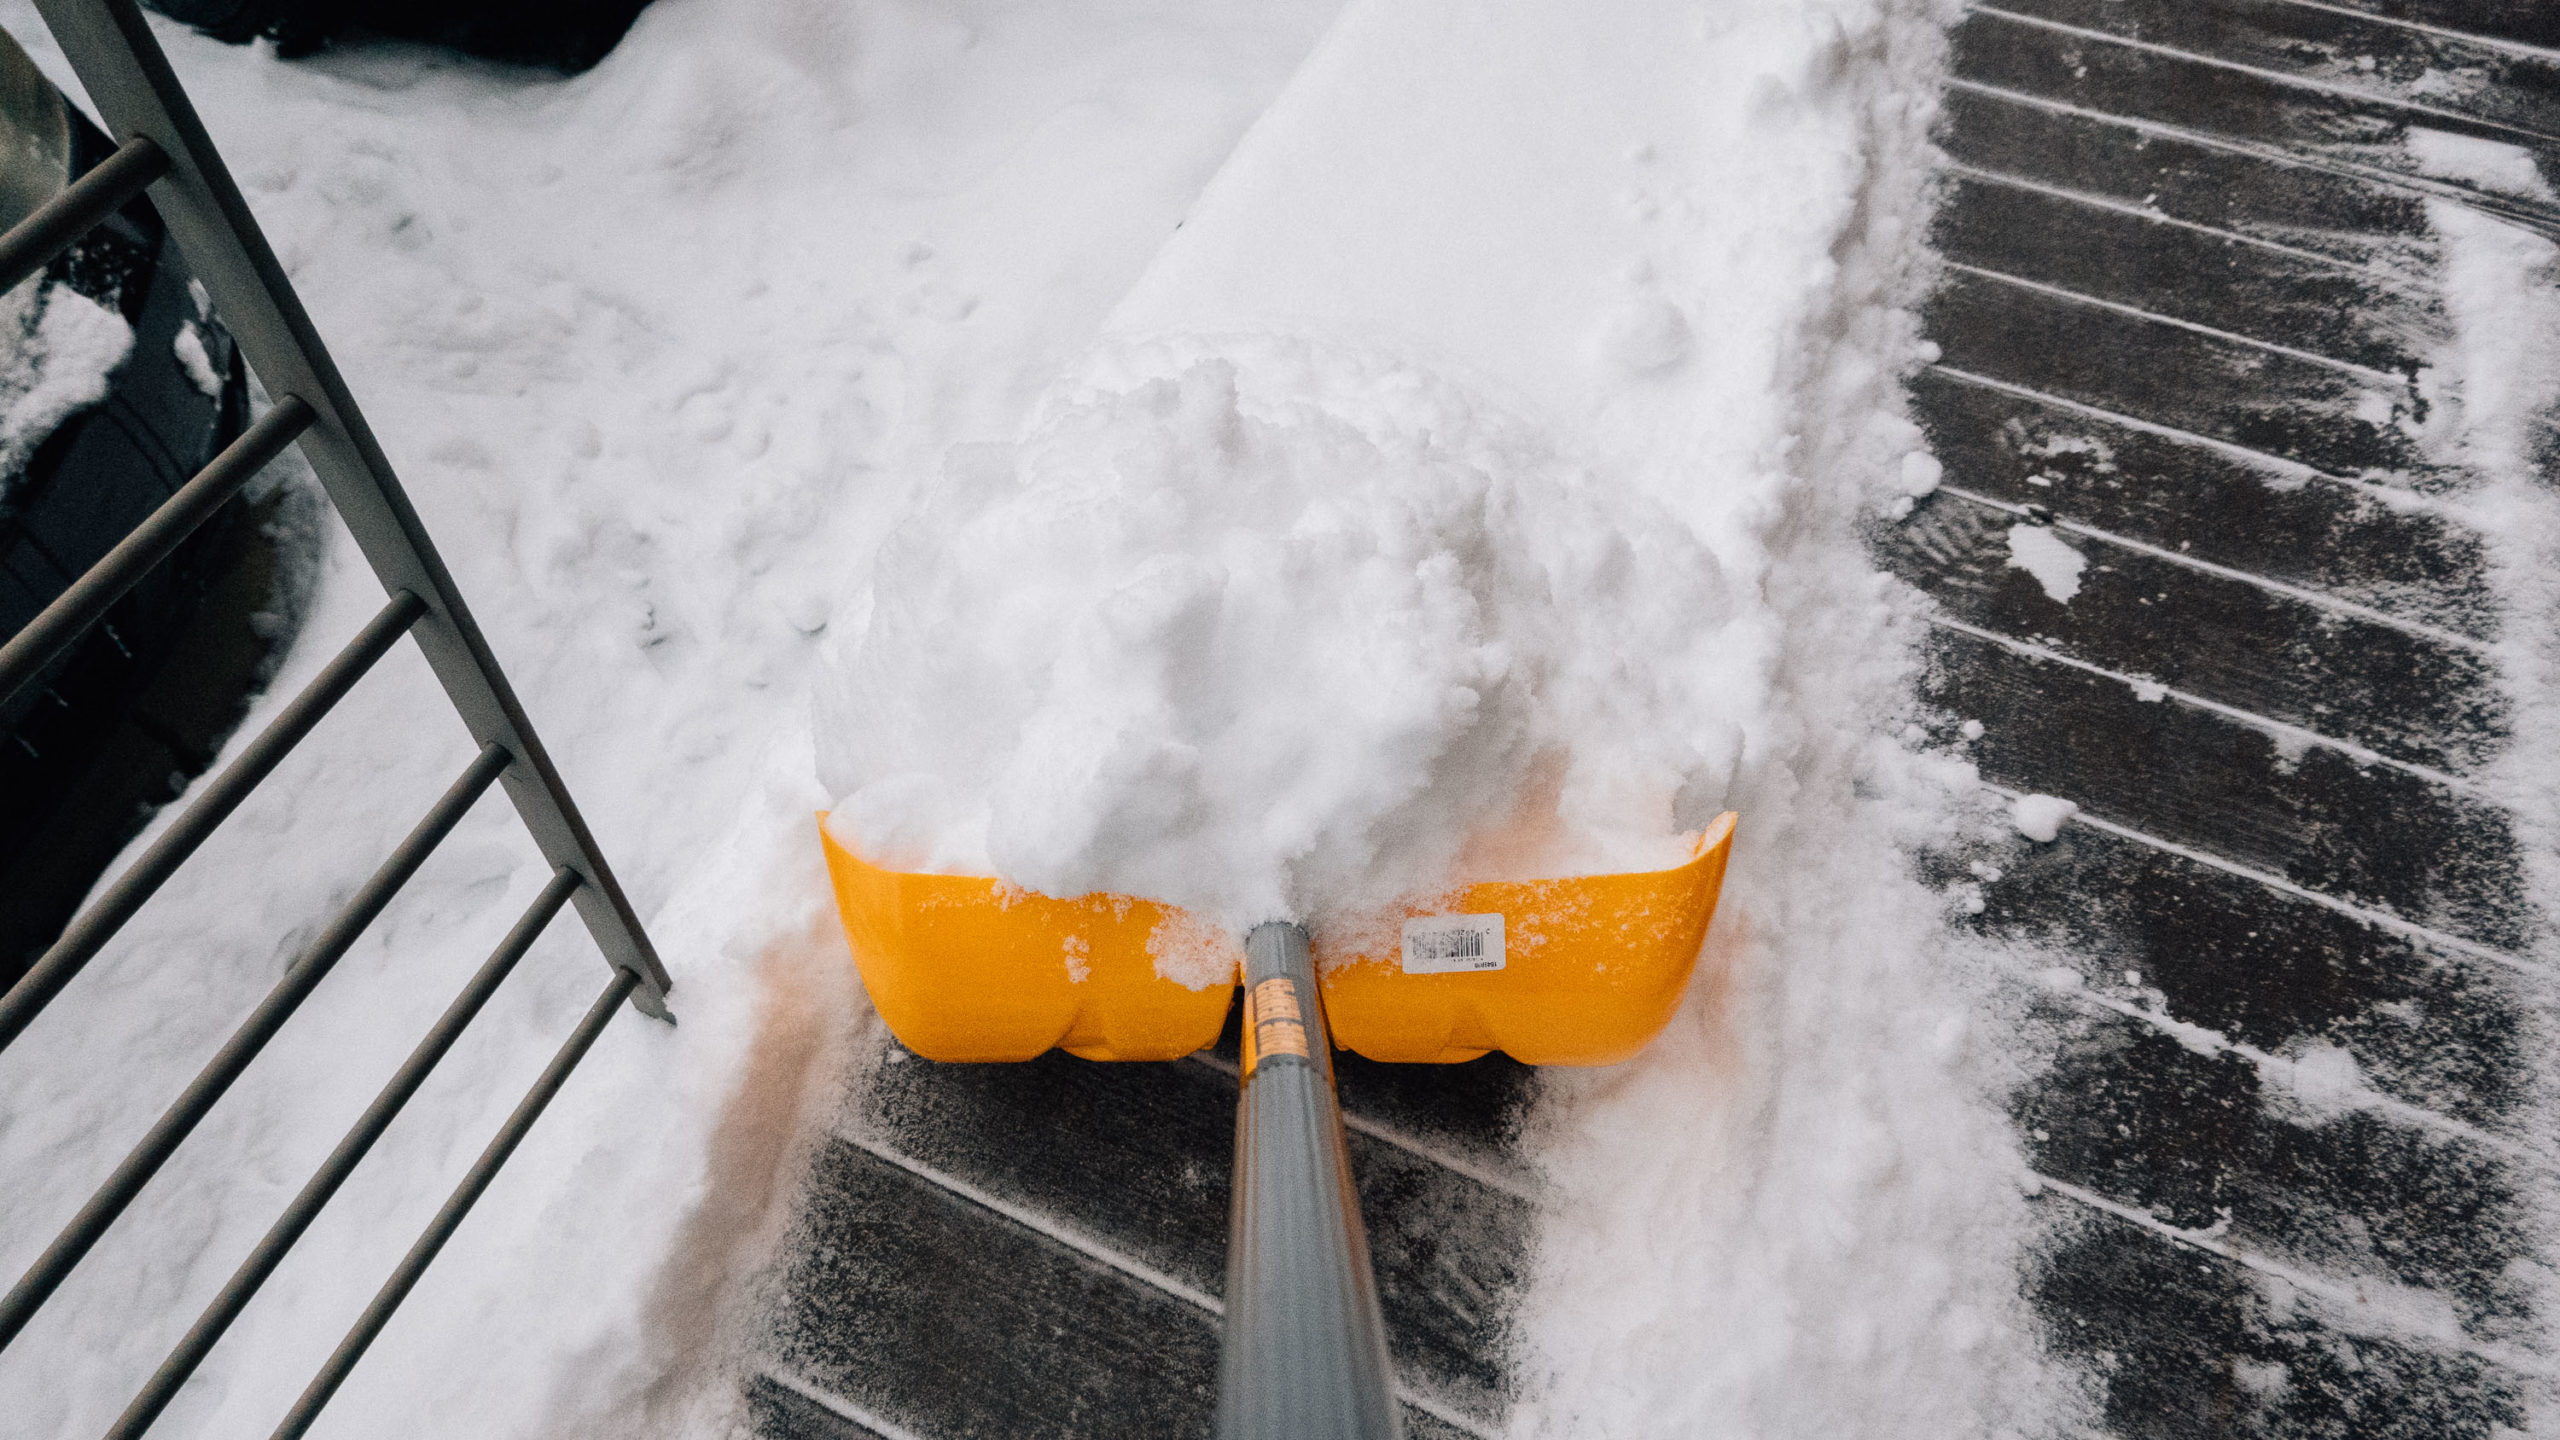 First person view shoveling snow